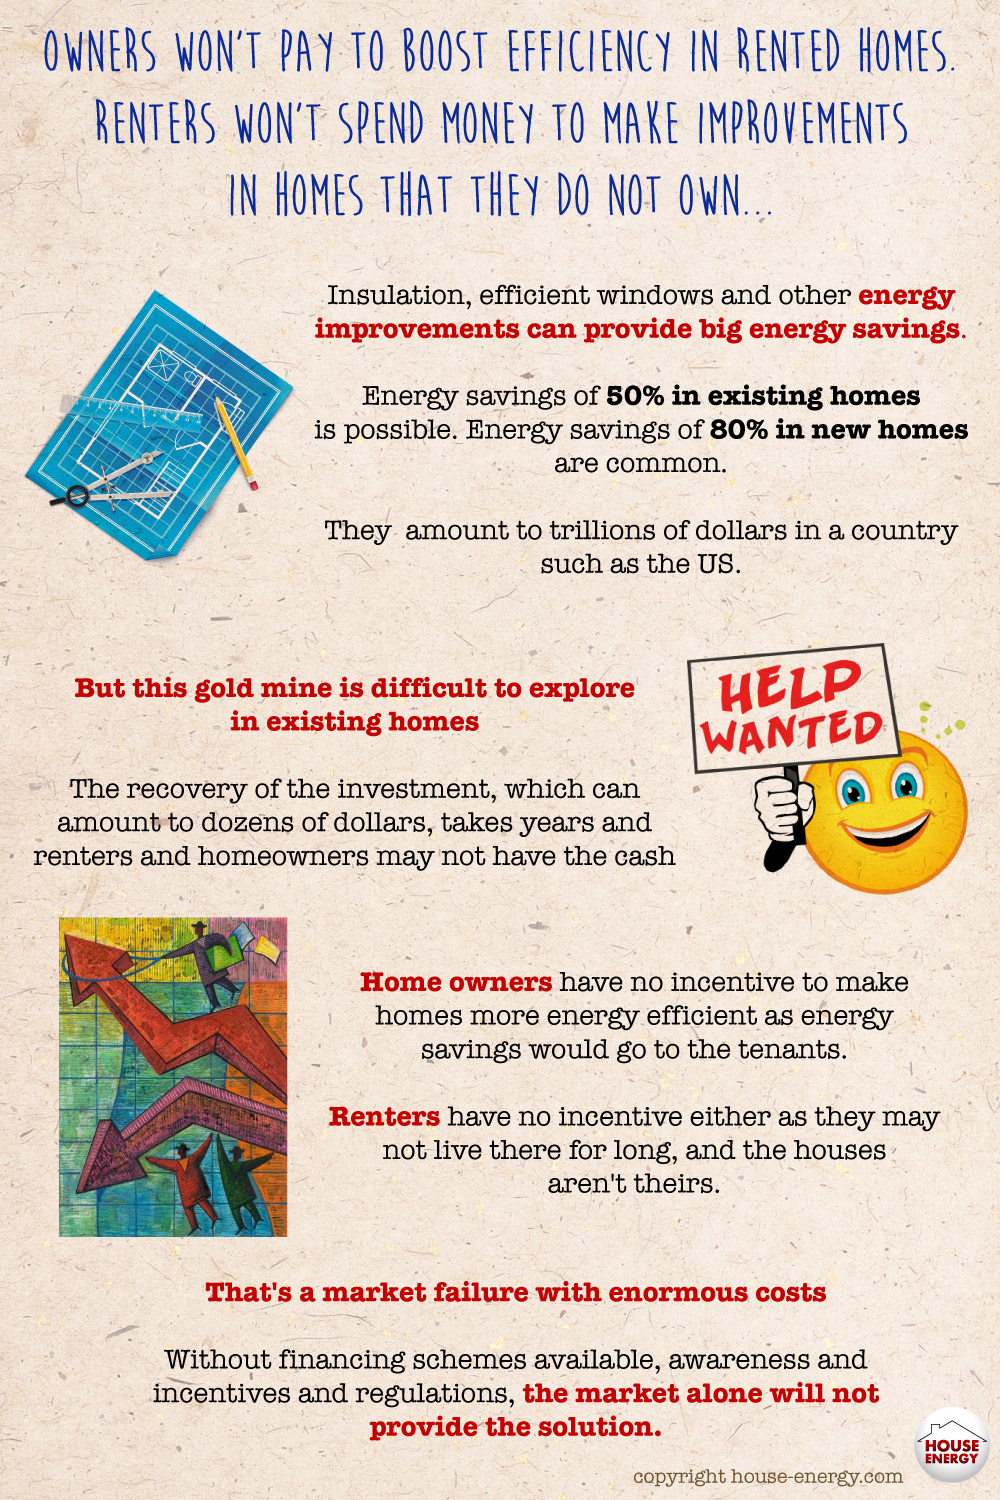 Homeowners vs. renters and energy improvements